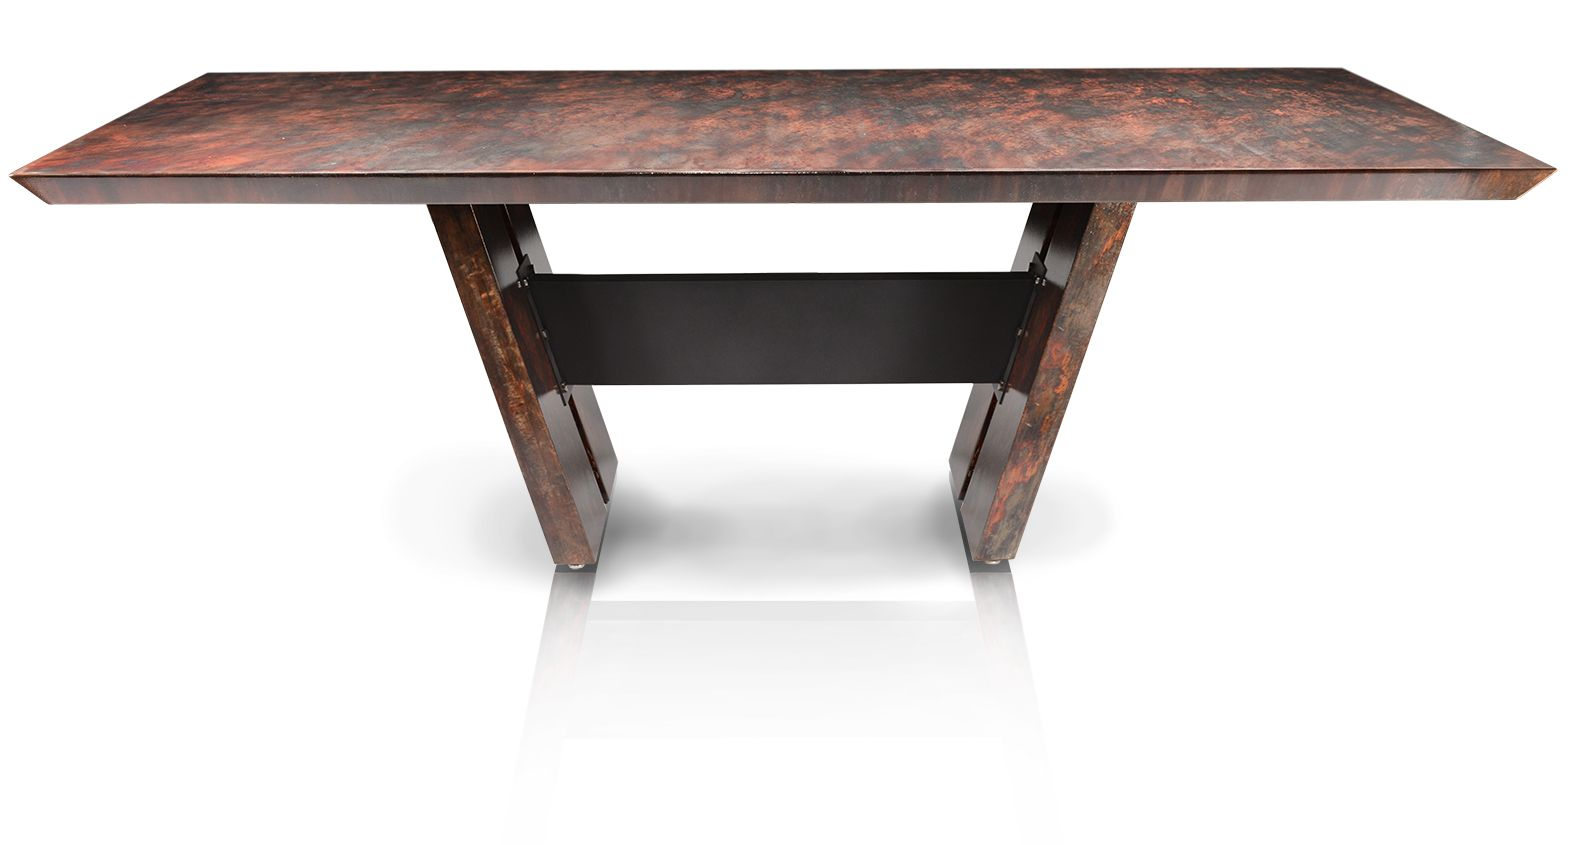 90 Metal All Dining Table By Oios Metals Can Be Made To